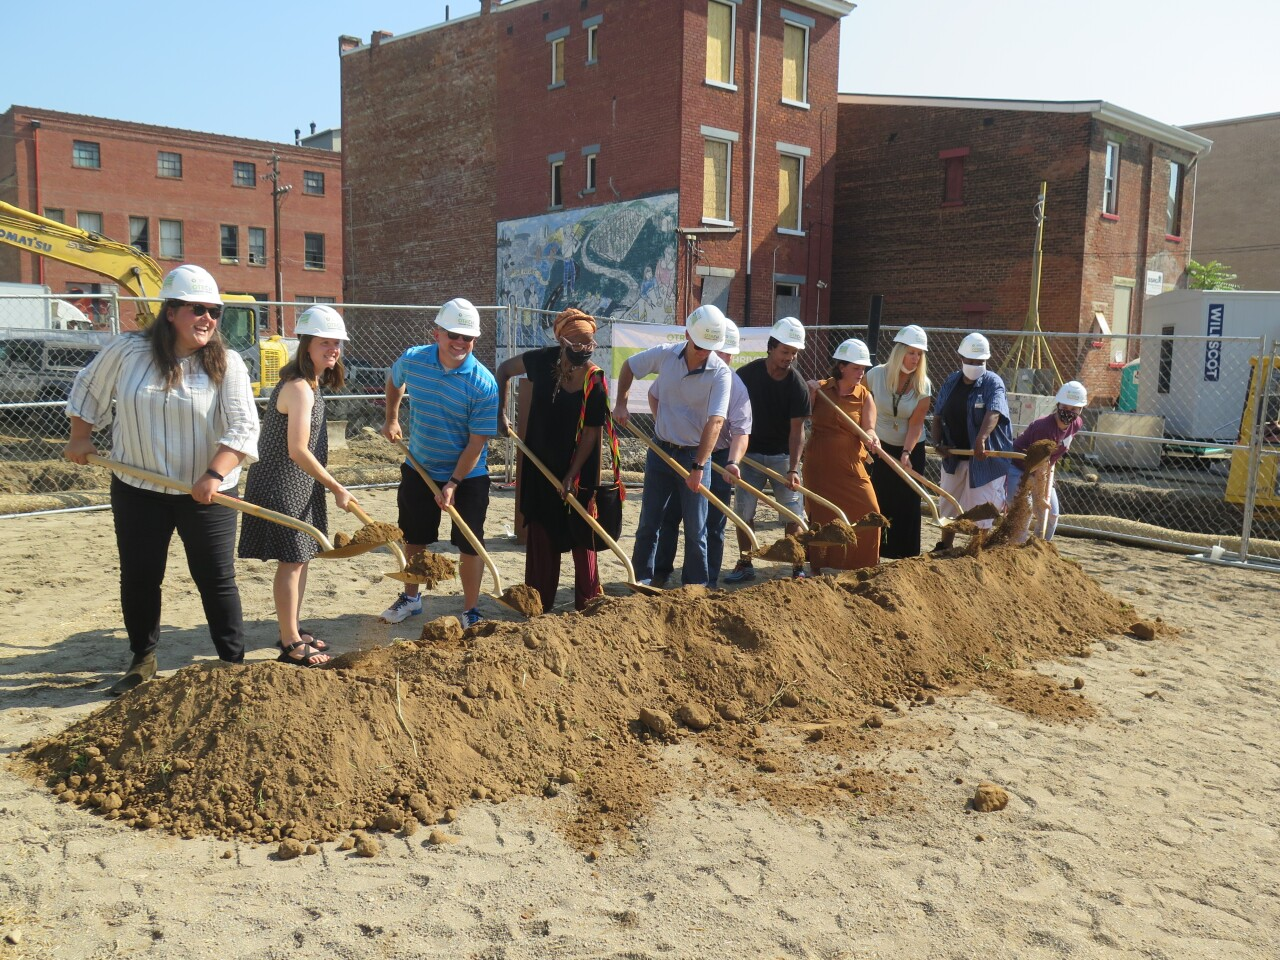 Mary Delaney, far left, and others who have been involved in the LPH Thrives development take a turn shoveling some ceremonial dirt at the project's official groundbreaking on Aug. 26, 2021.